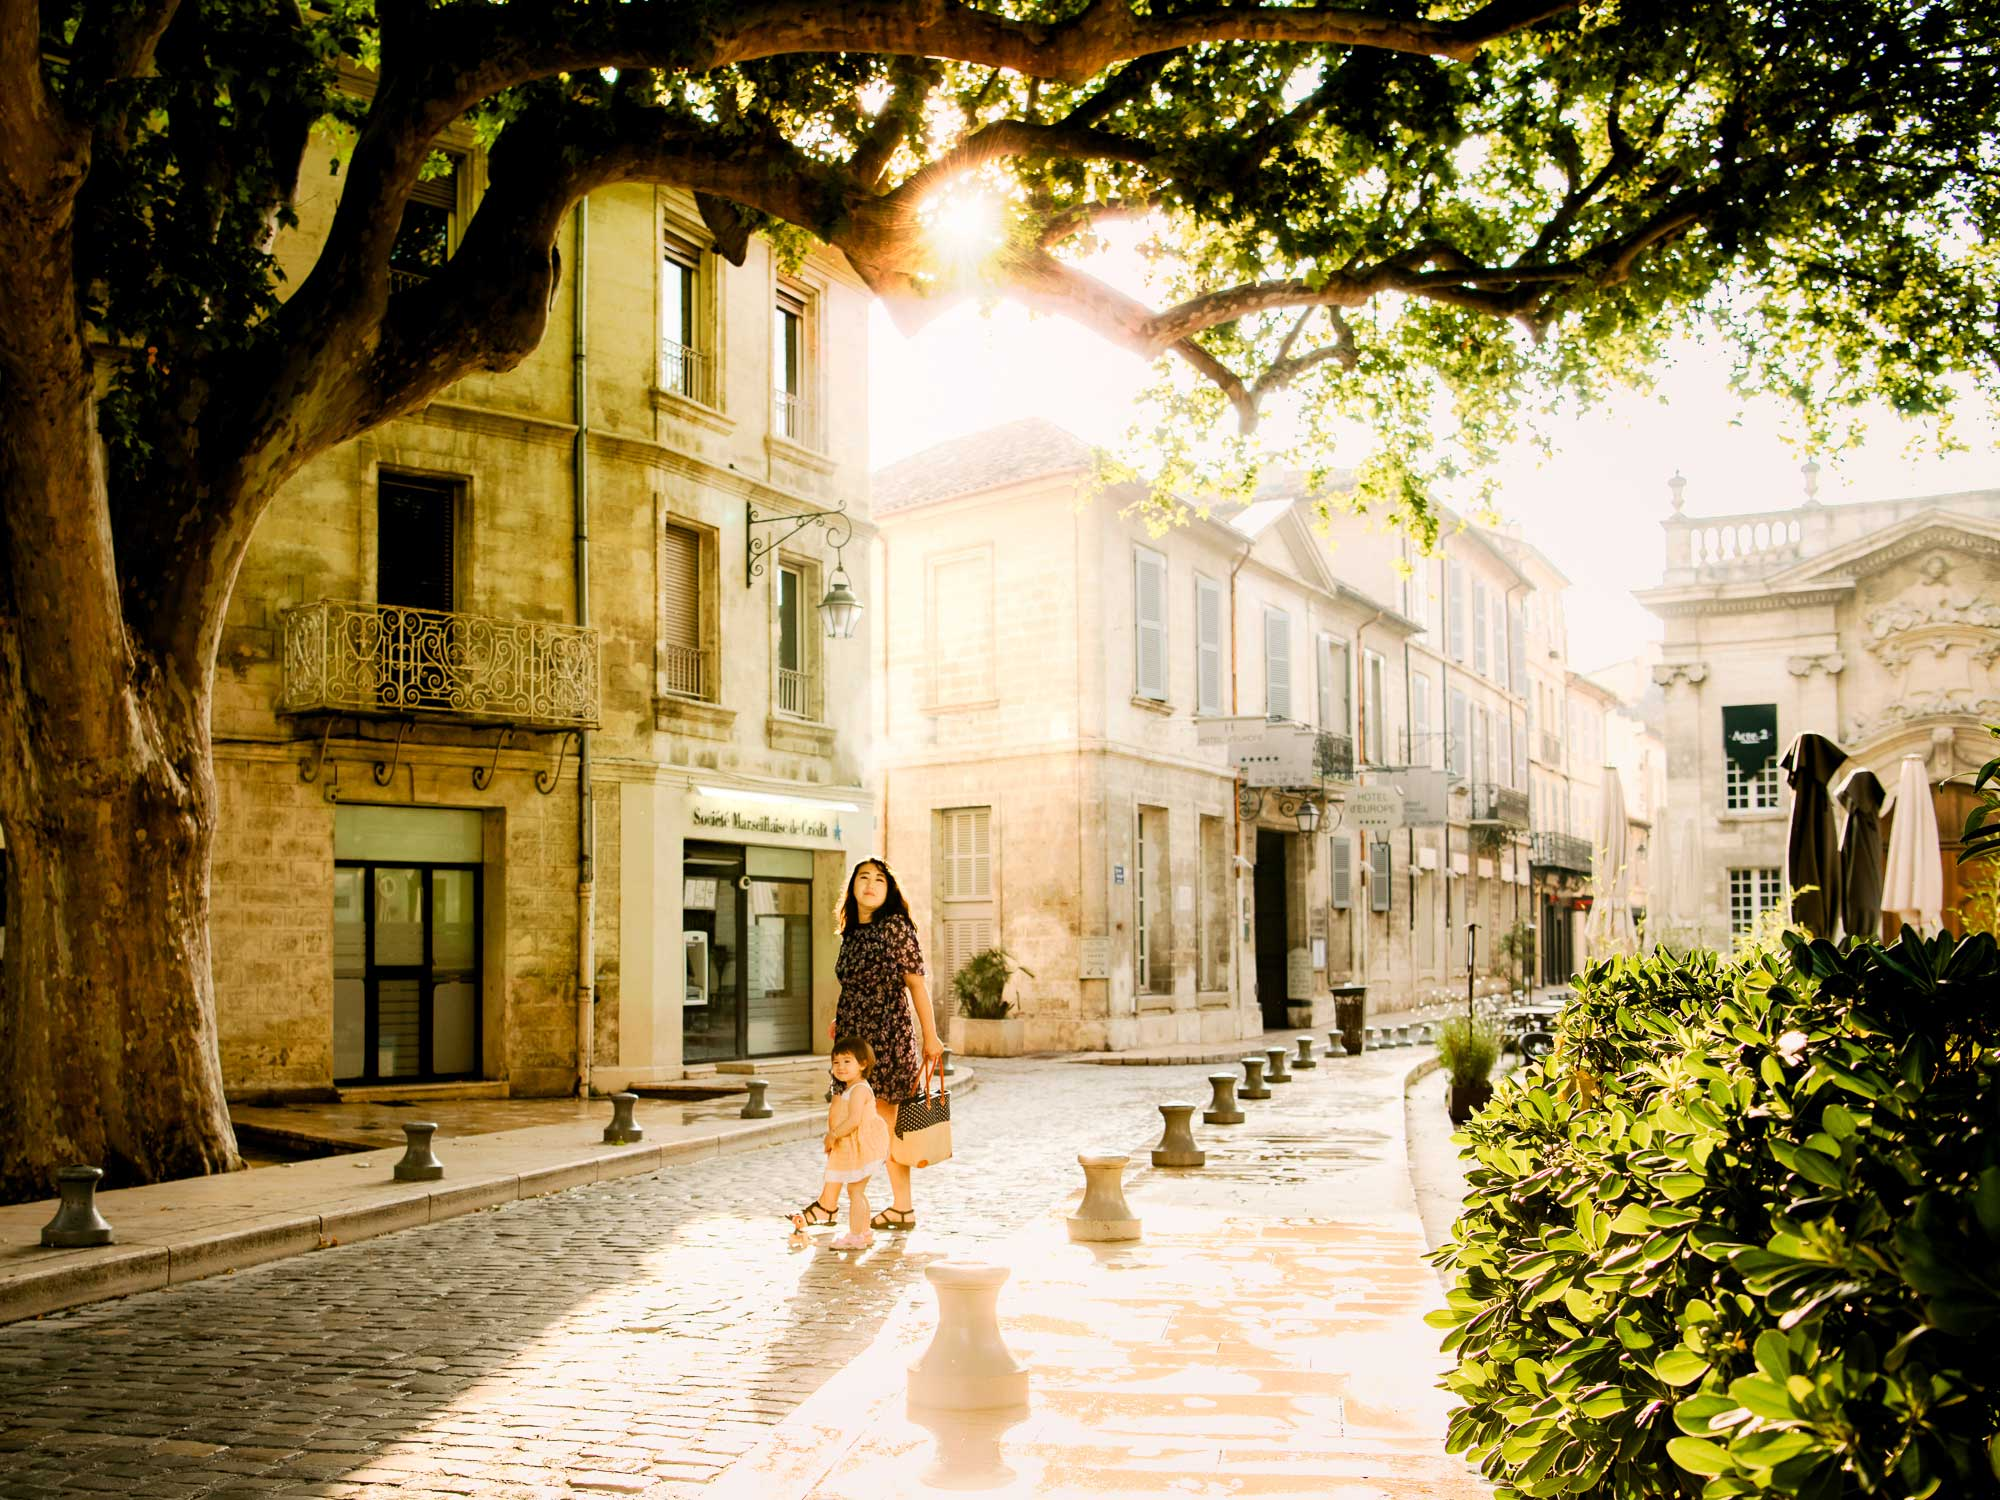 The beautiful streets of Avignon, France on a Spring morning.